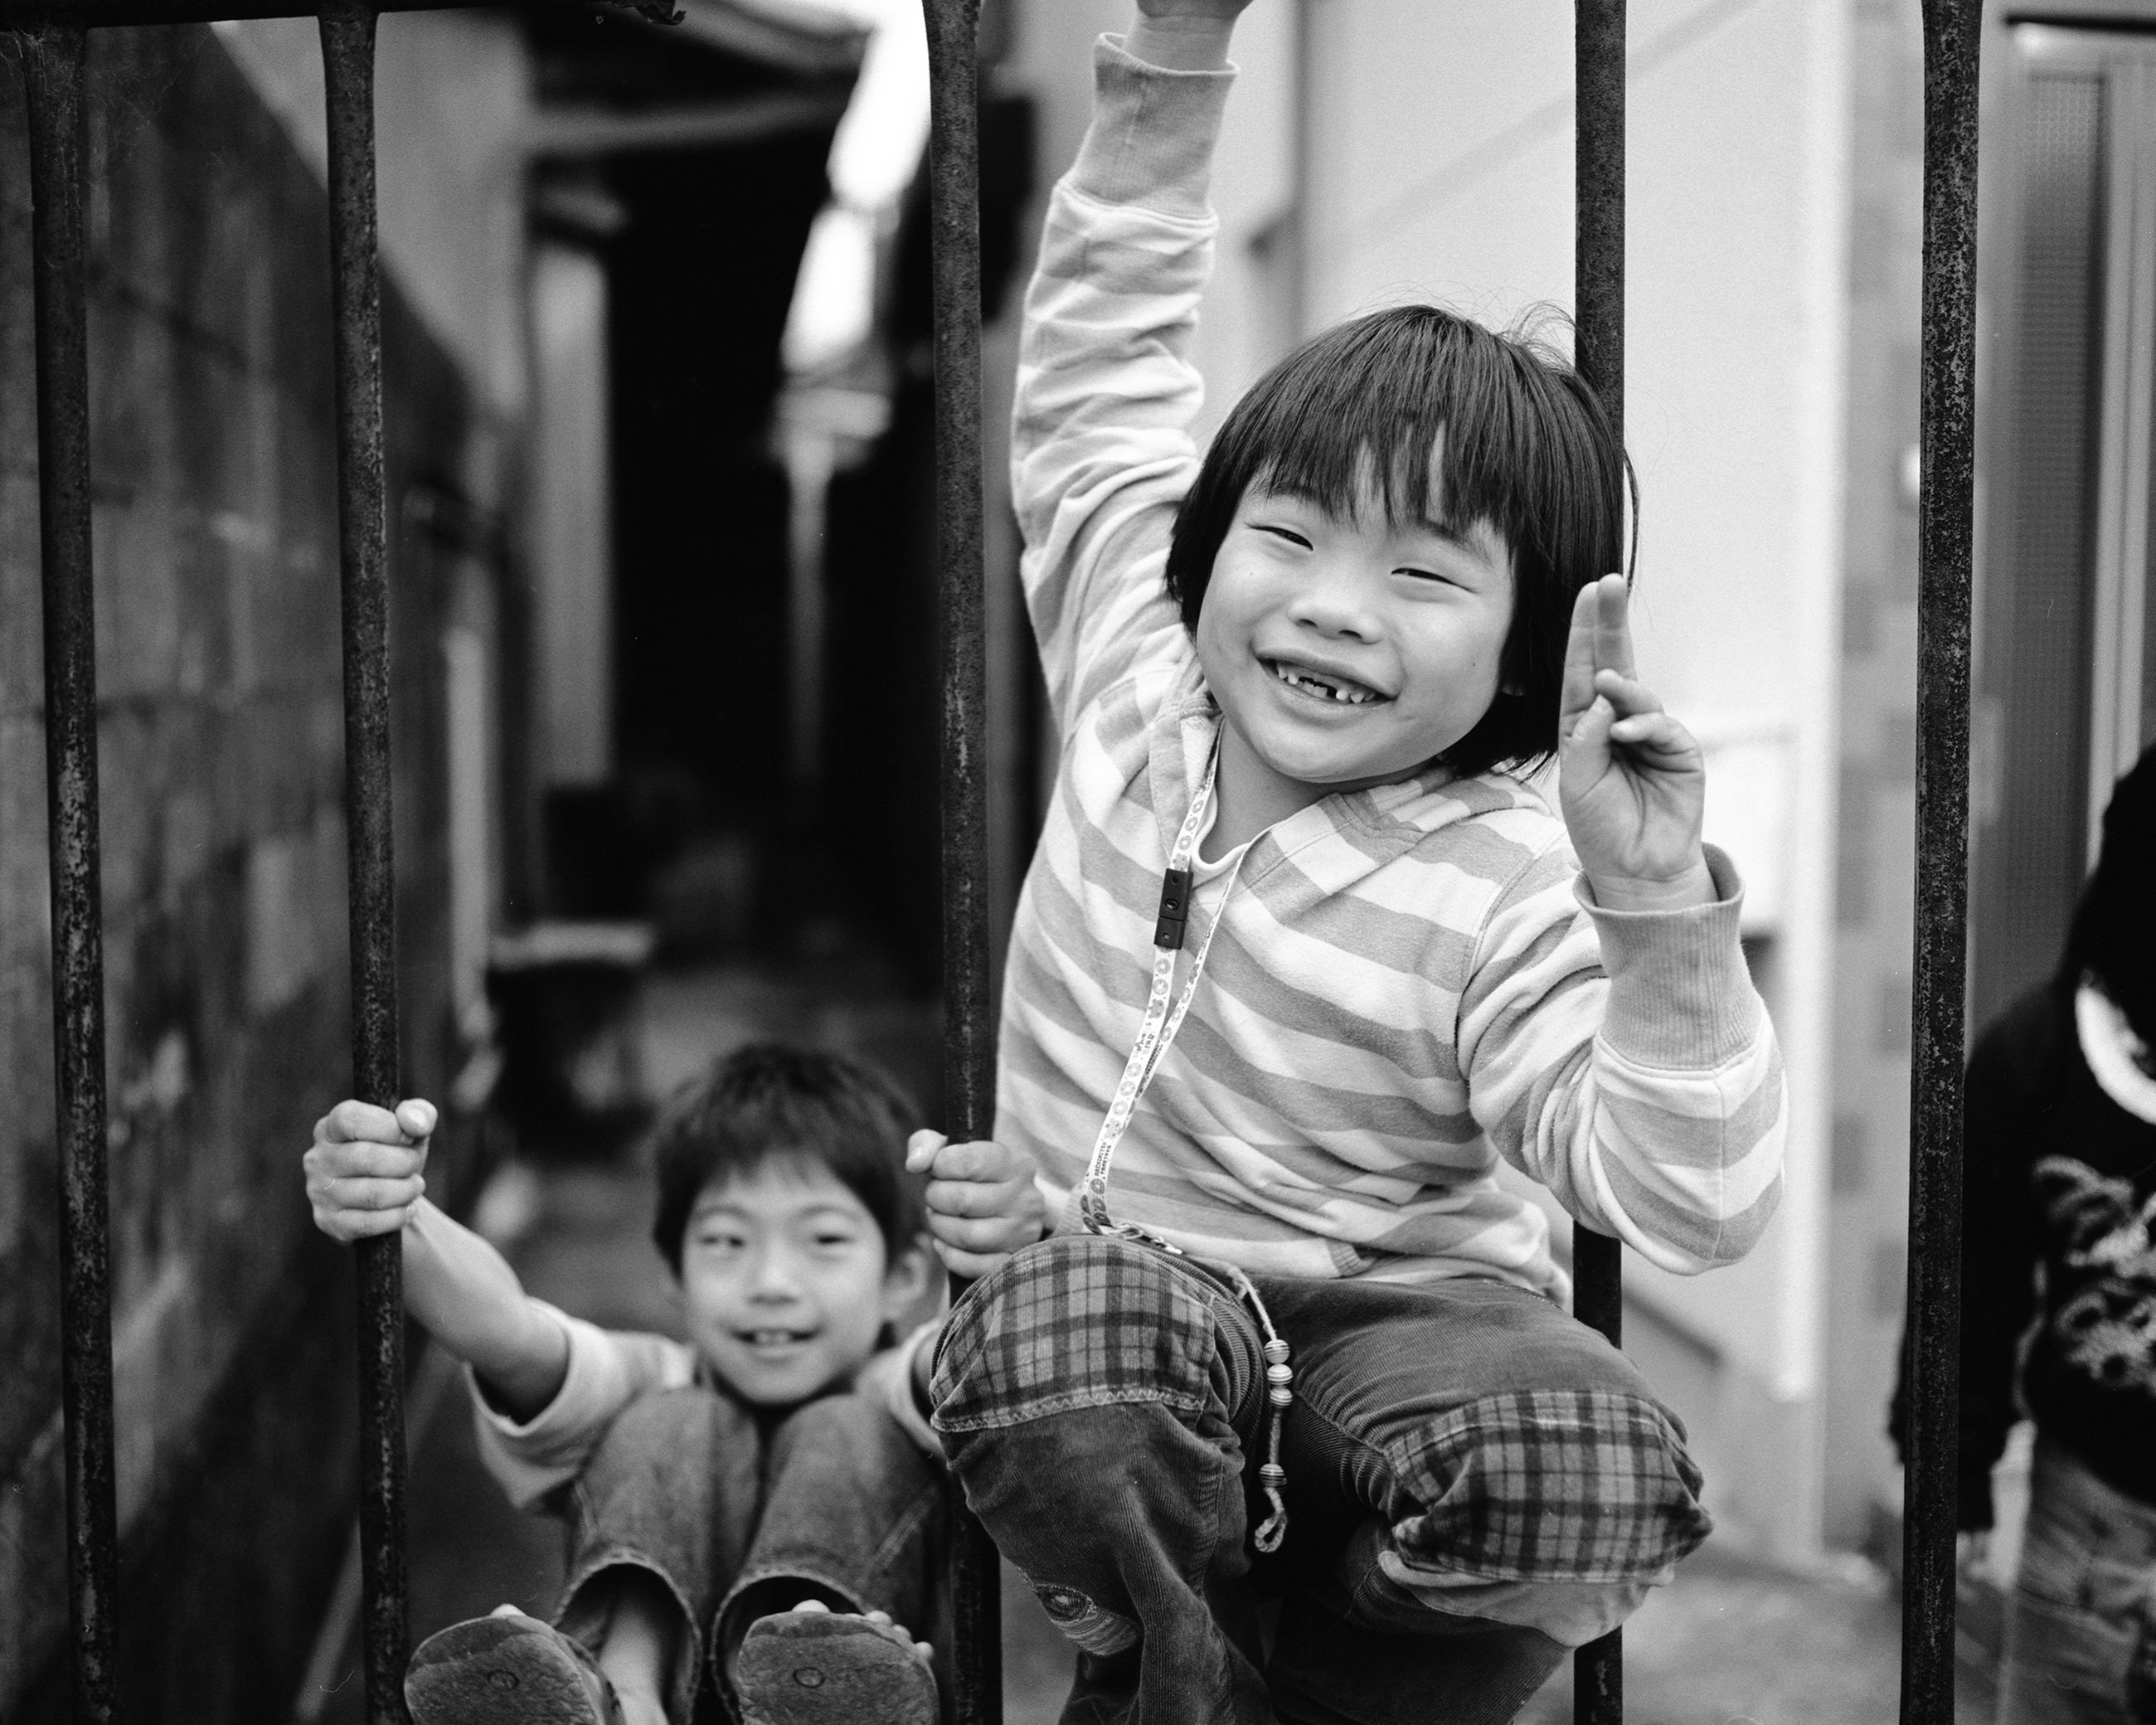 child, boys, childhood, males, two people, playground, smiling, people, outdoors, real people, portrait, cheerful, togetherness, day, adult